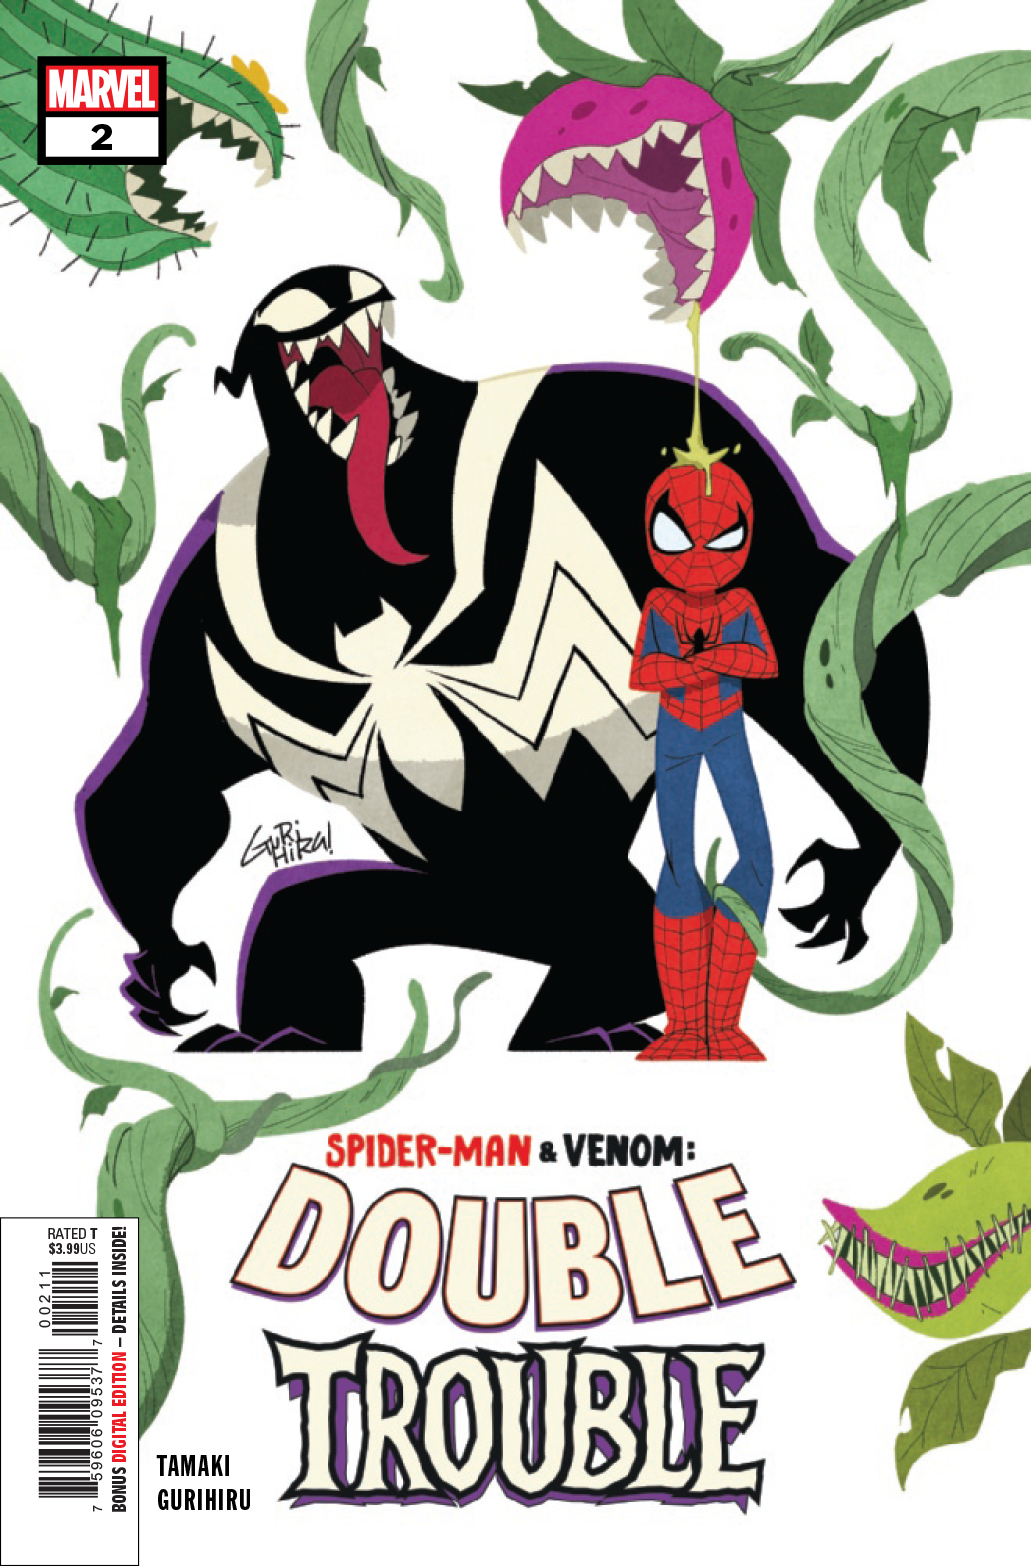 SPIDER-MAN & VENOM DOUBLE TROUBLE #2 (OF 4)